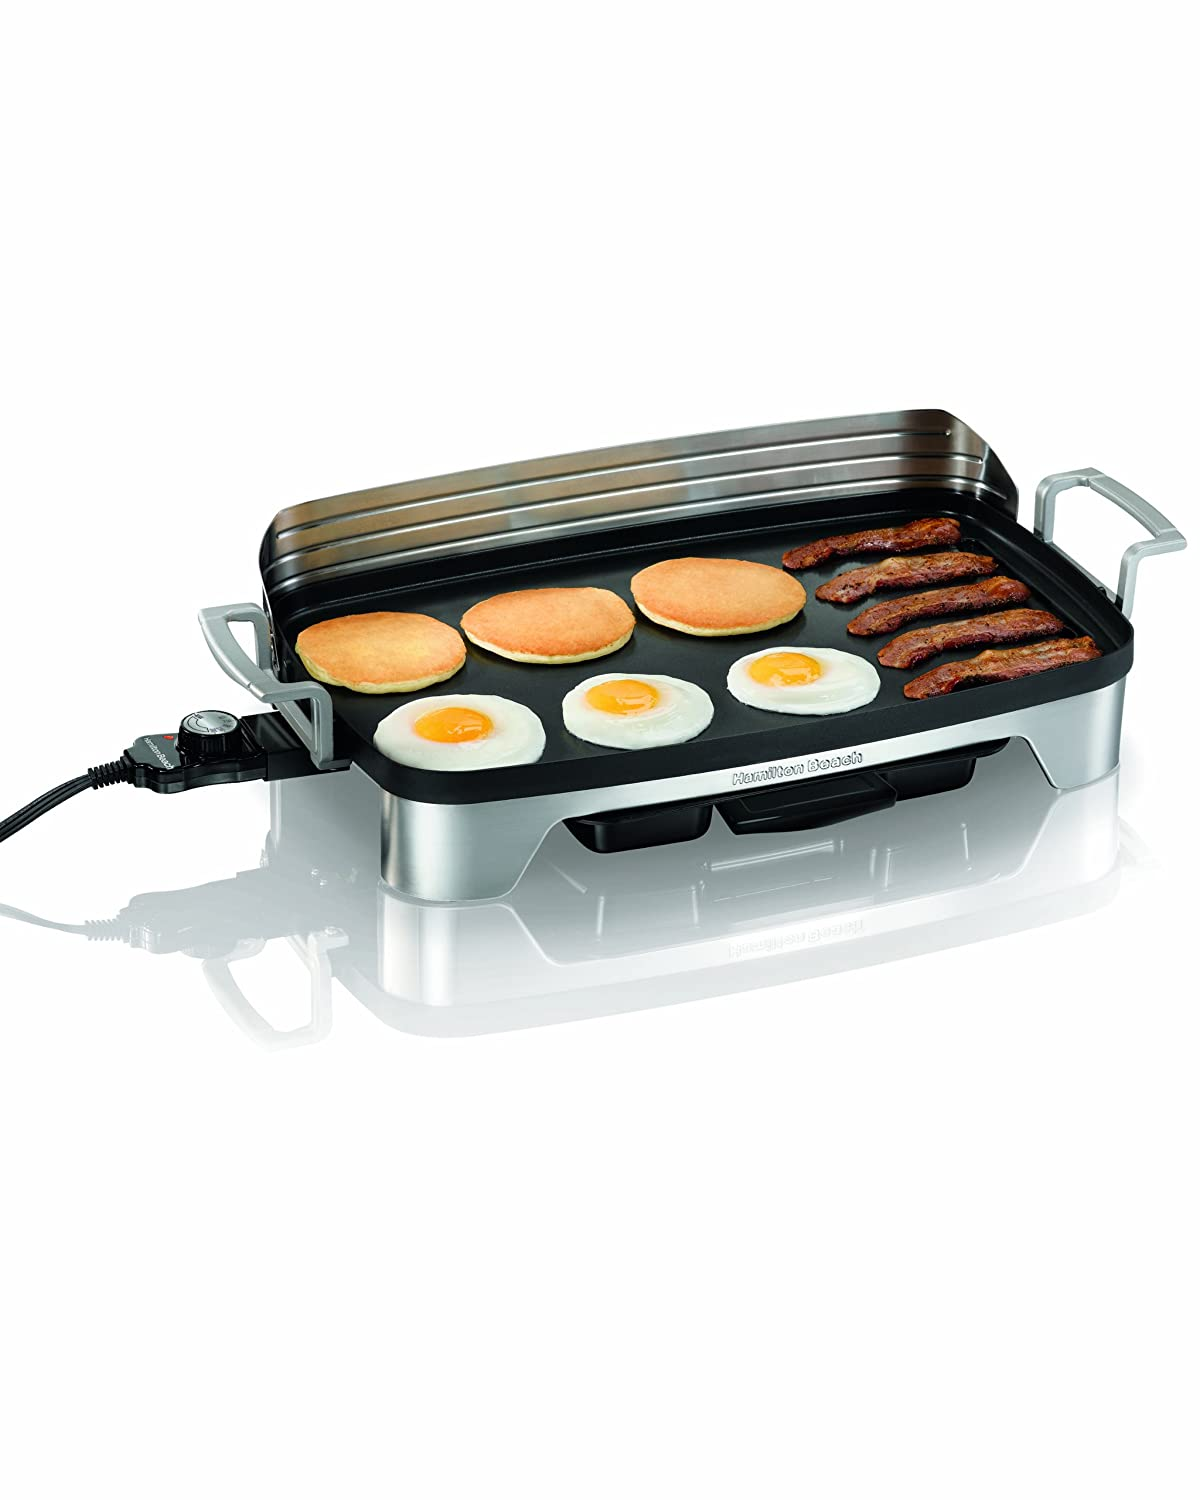 Hamilton Beach 38541 220 sq. in. Premiere Cookware Griddle Hamilton-Beach